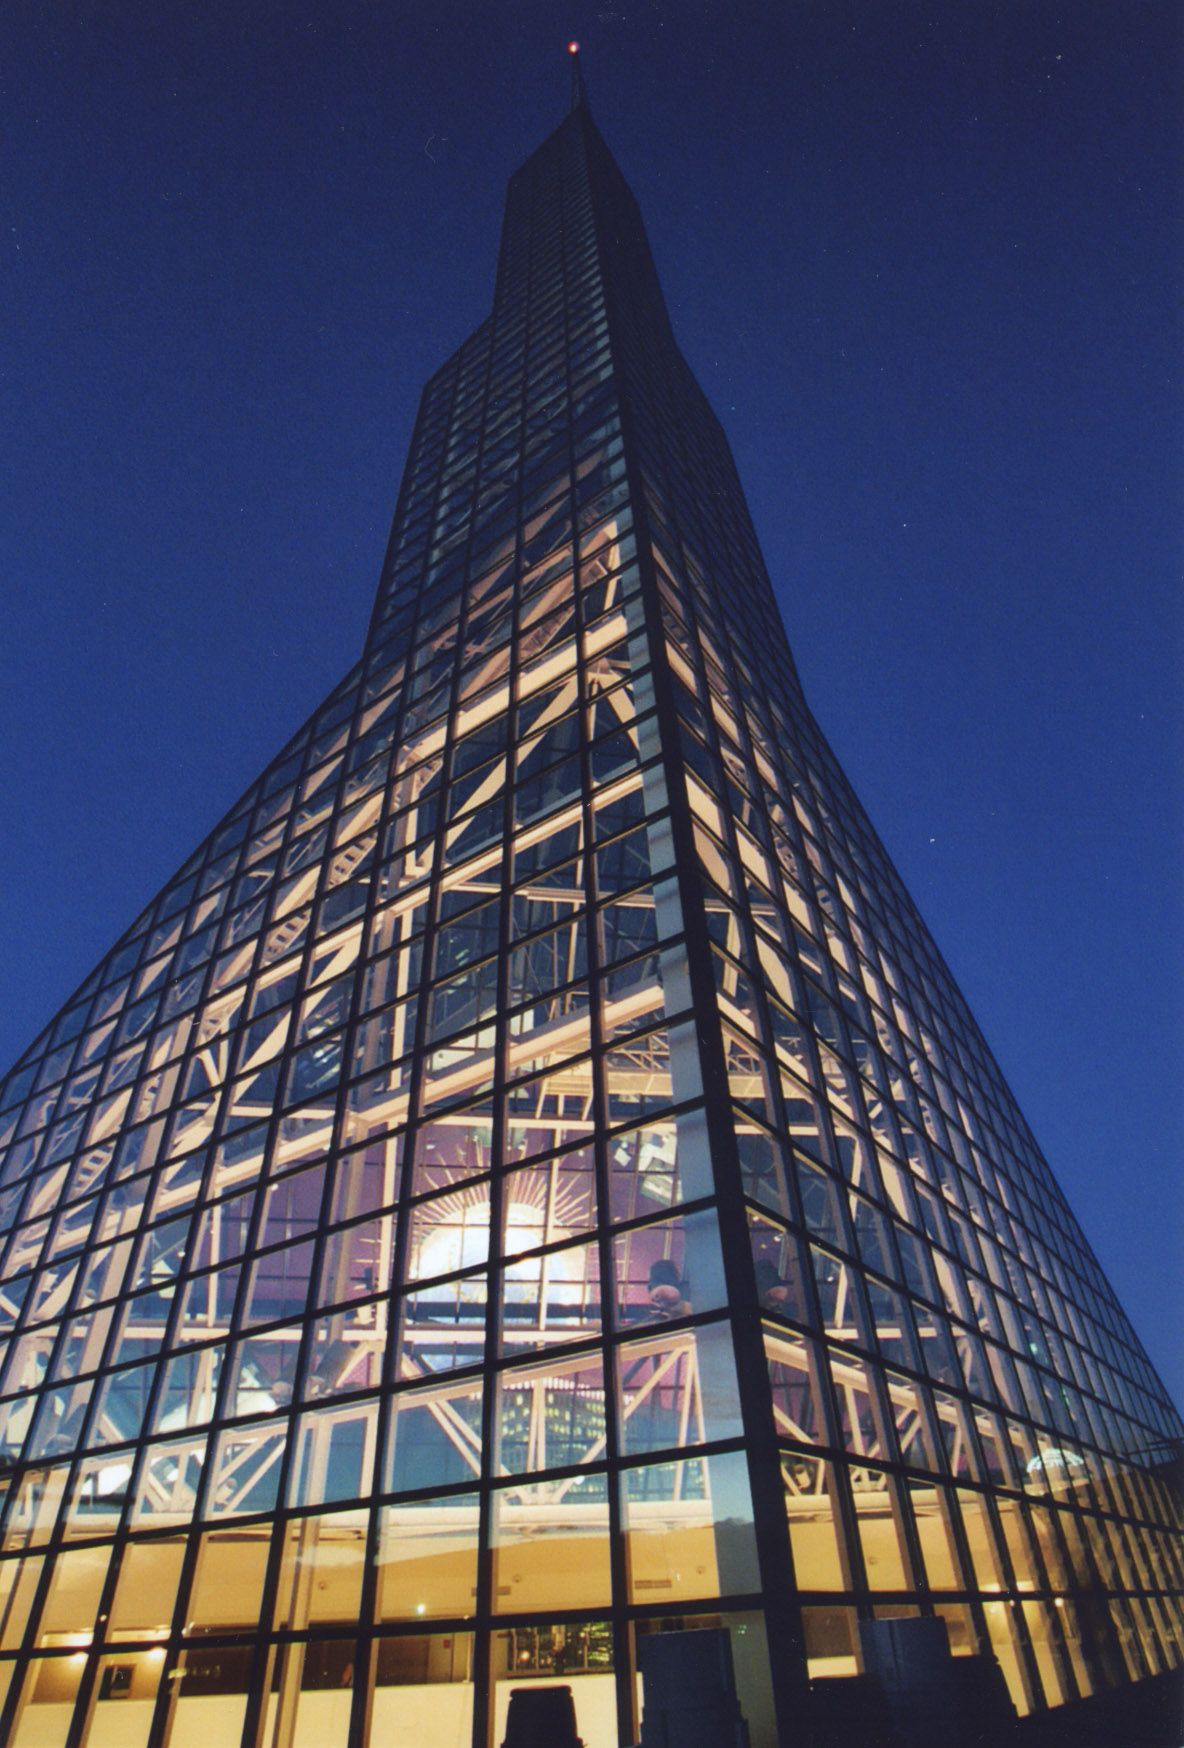 The two 250 foot towers are built from glass and steel